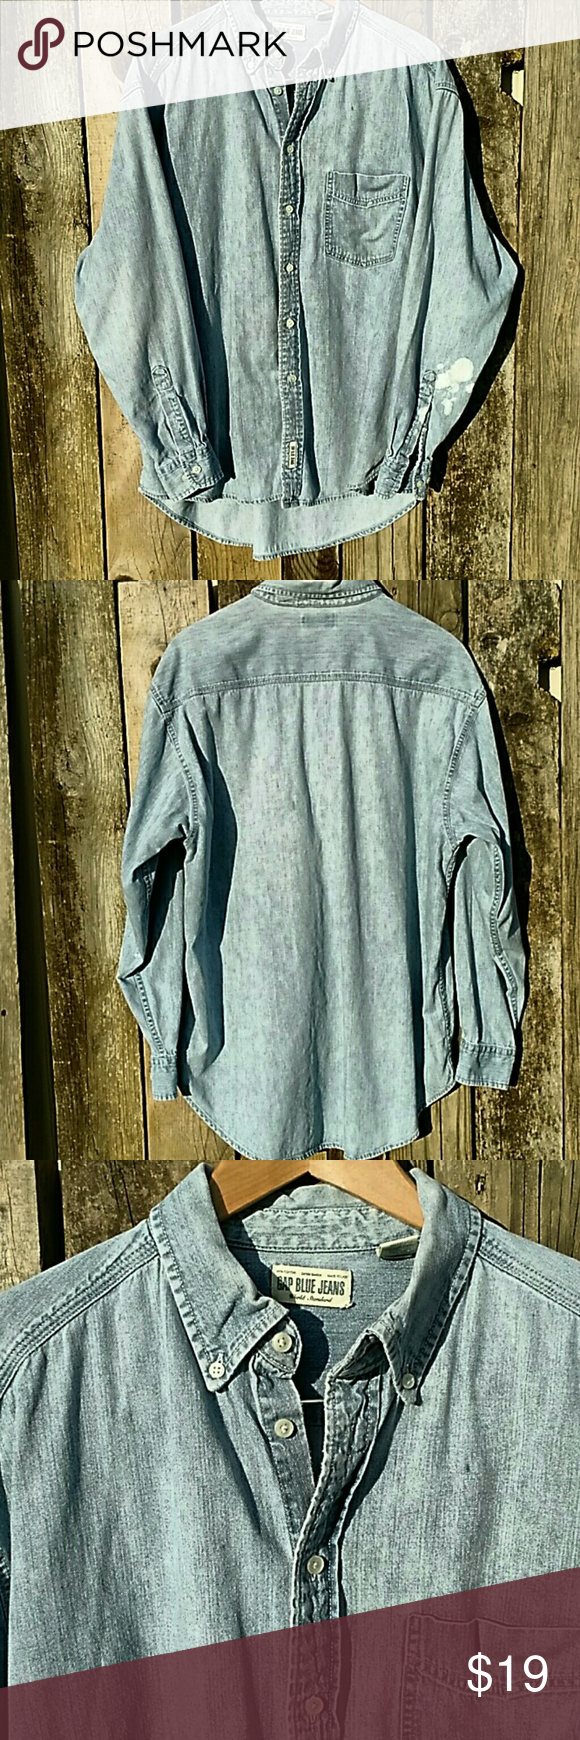 Sale! GAP JEANS Denim Work Shirt sz Large Faded denim, this button down is worn in perfection. Size large. Light denim. GAP Tops Button Down Shirts